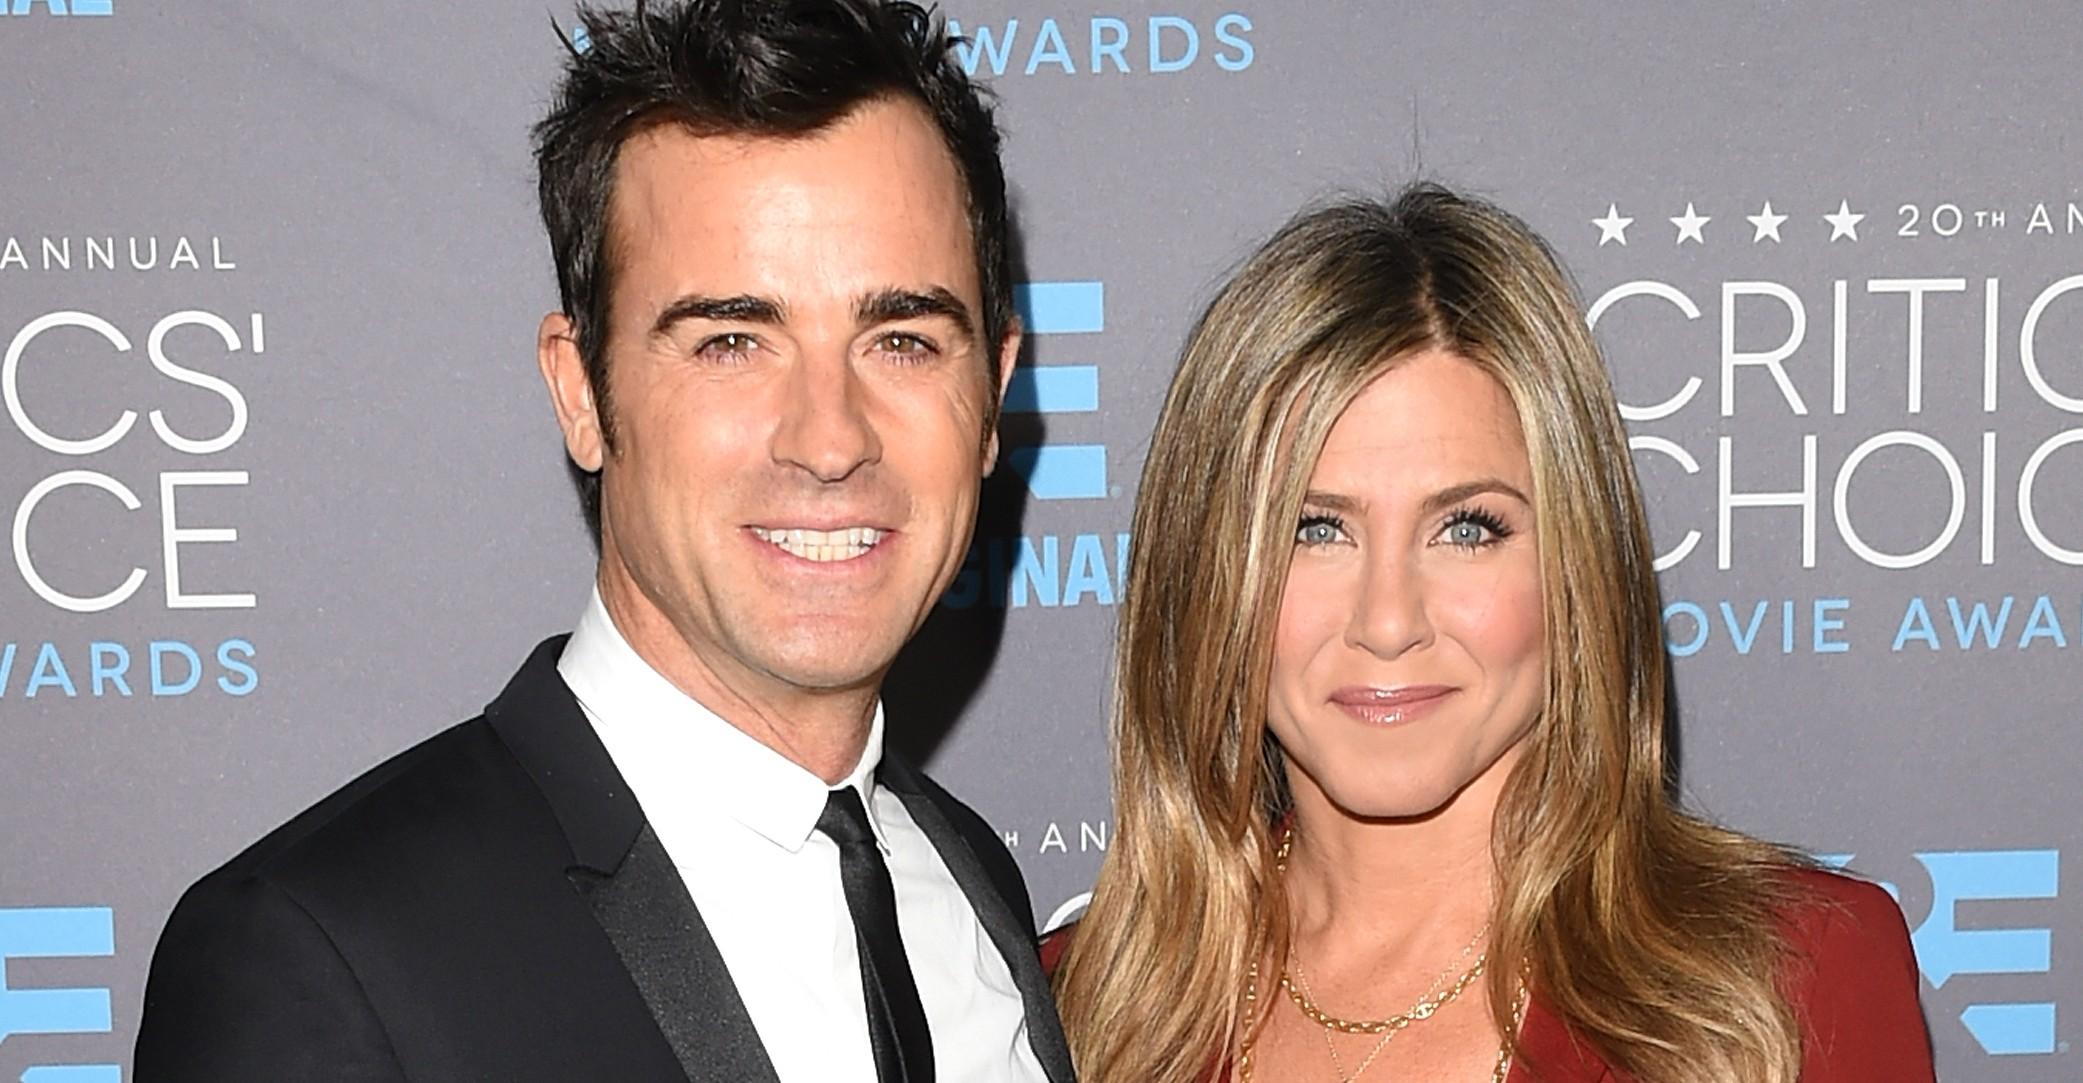 Jennifer Aniston e Justin Theroux. (Foto: Getty Images)